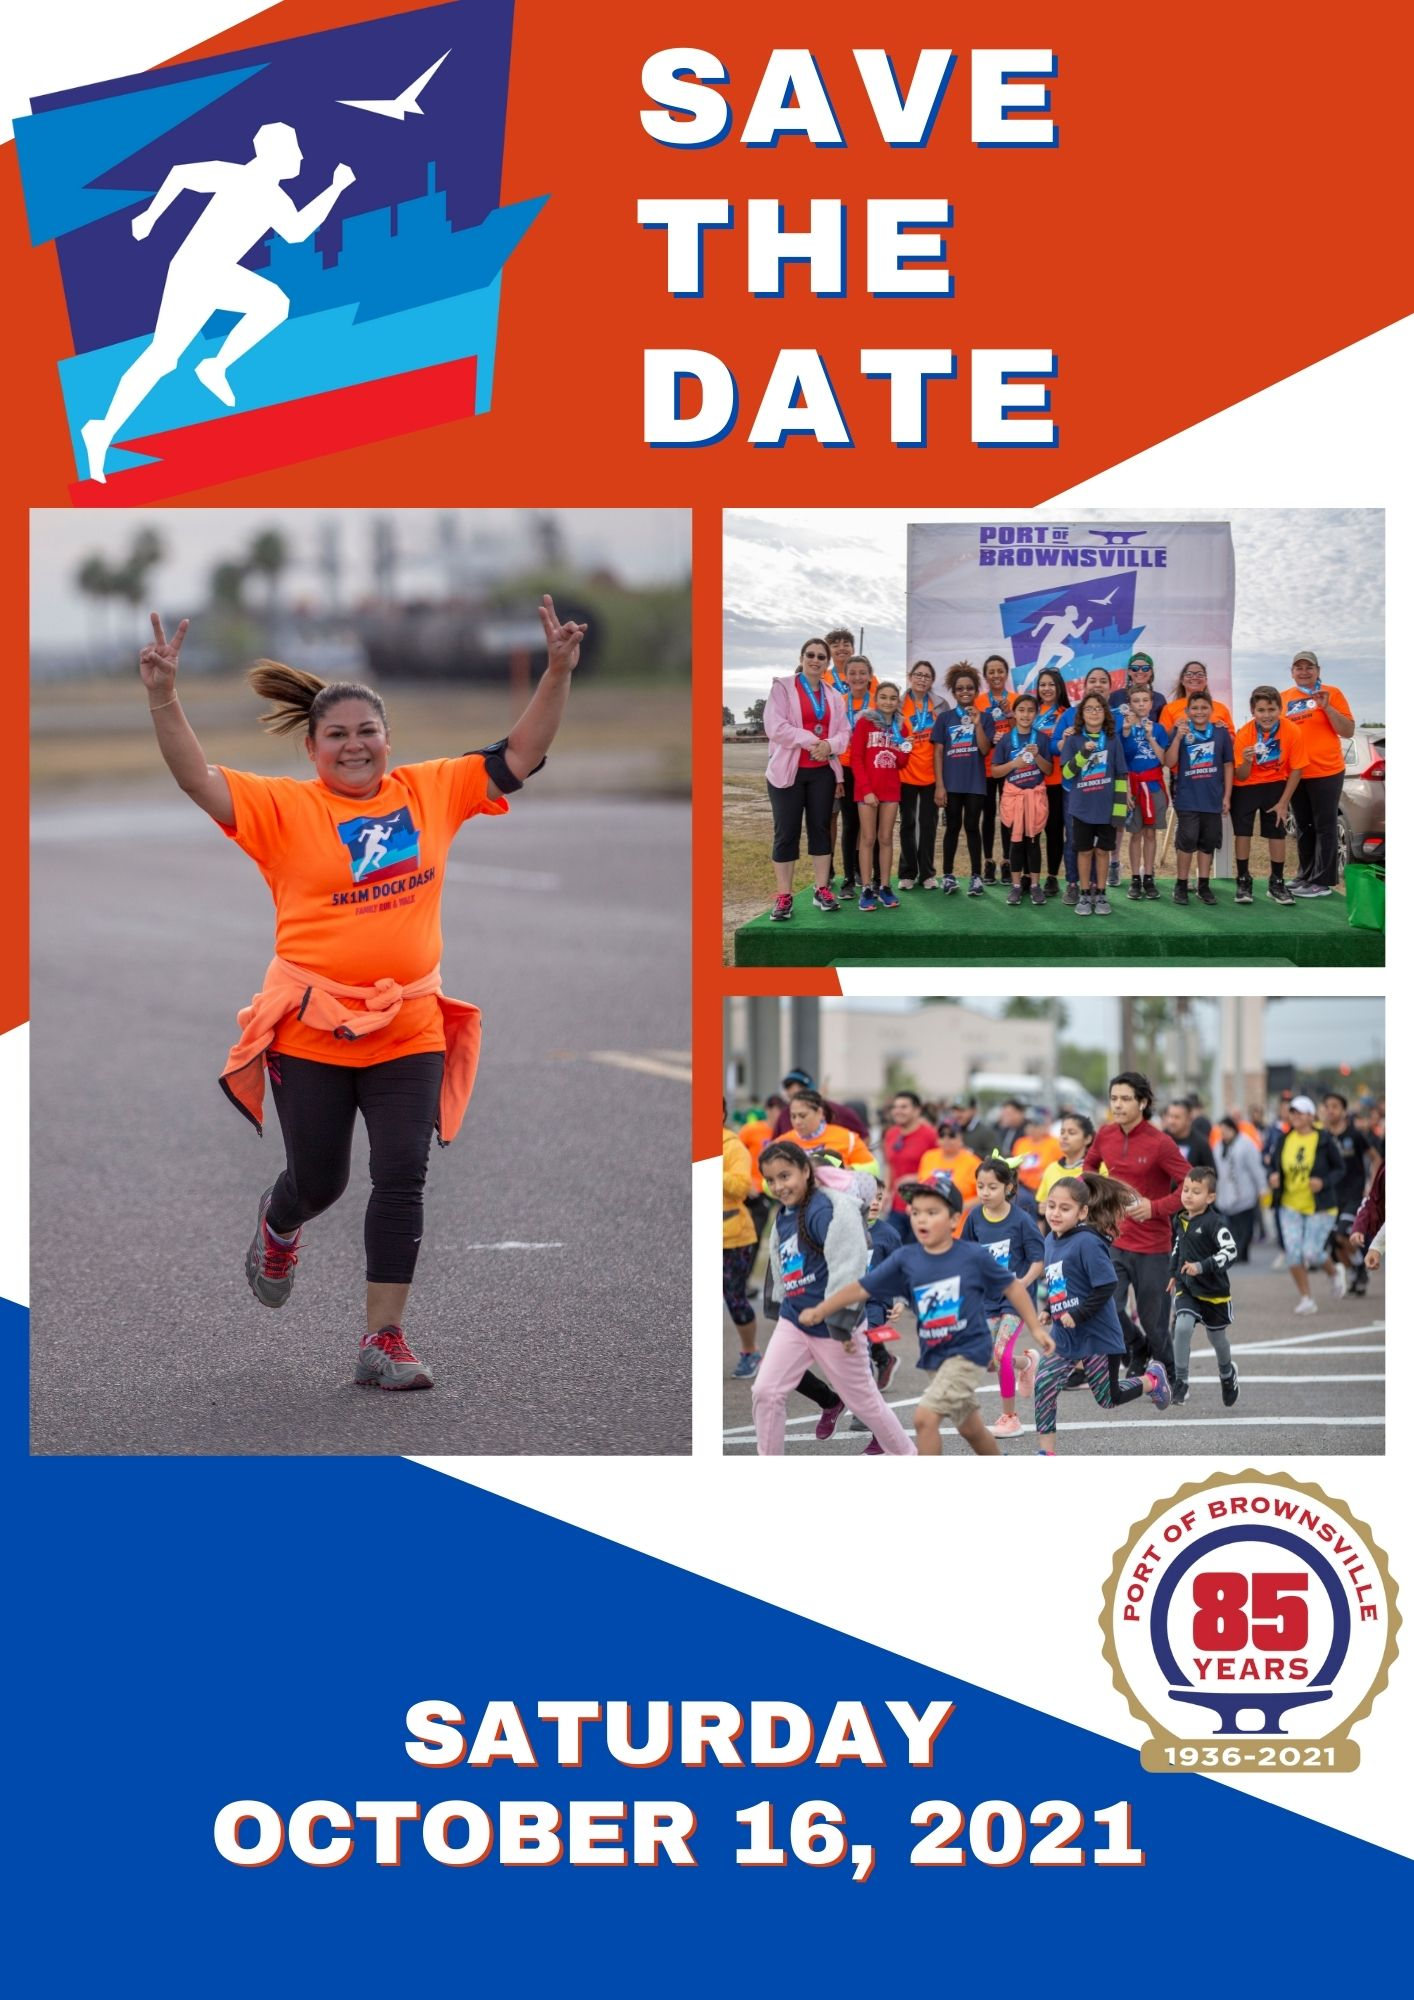 Save the Date Dock Dash October 16, 2021